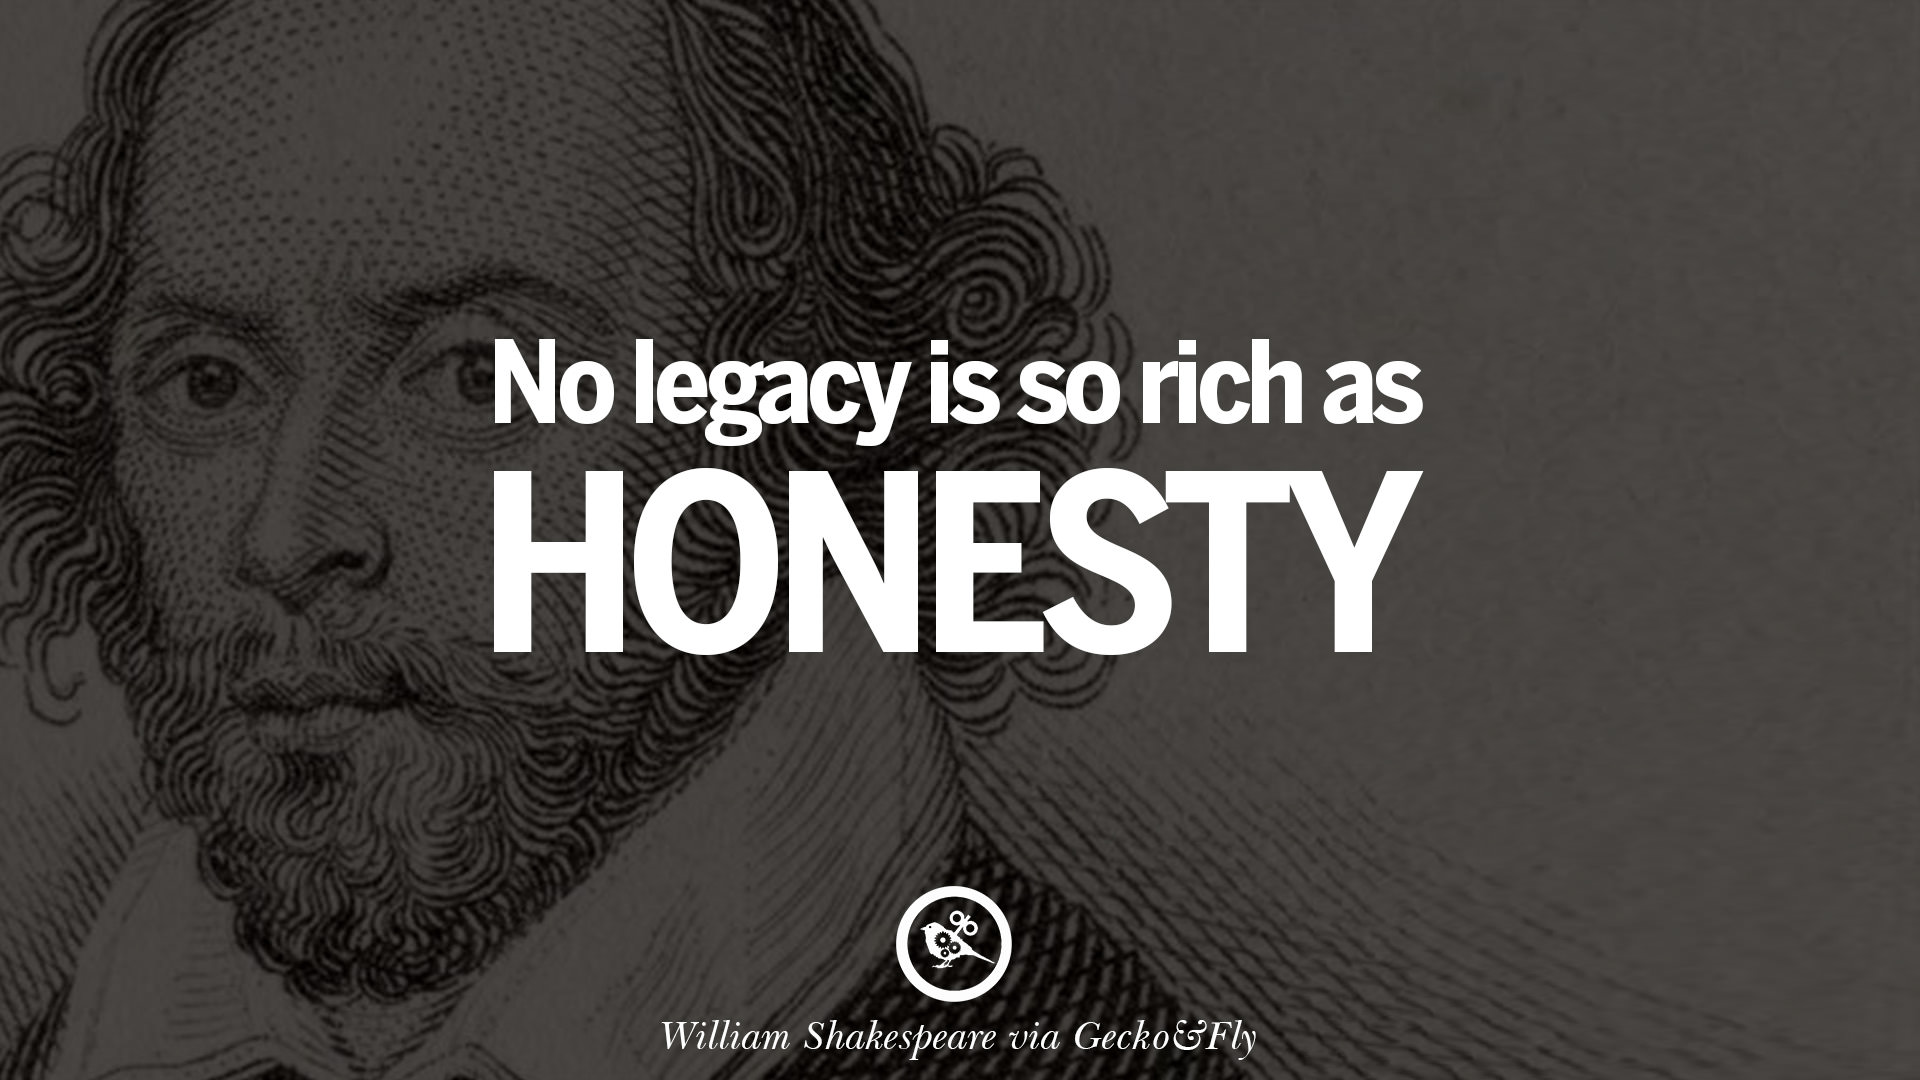 Quotes About Honesty In Friendship Unique 30 William Shakespeare Quotes About Love Life Friendship And